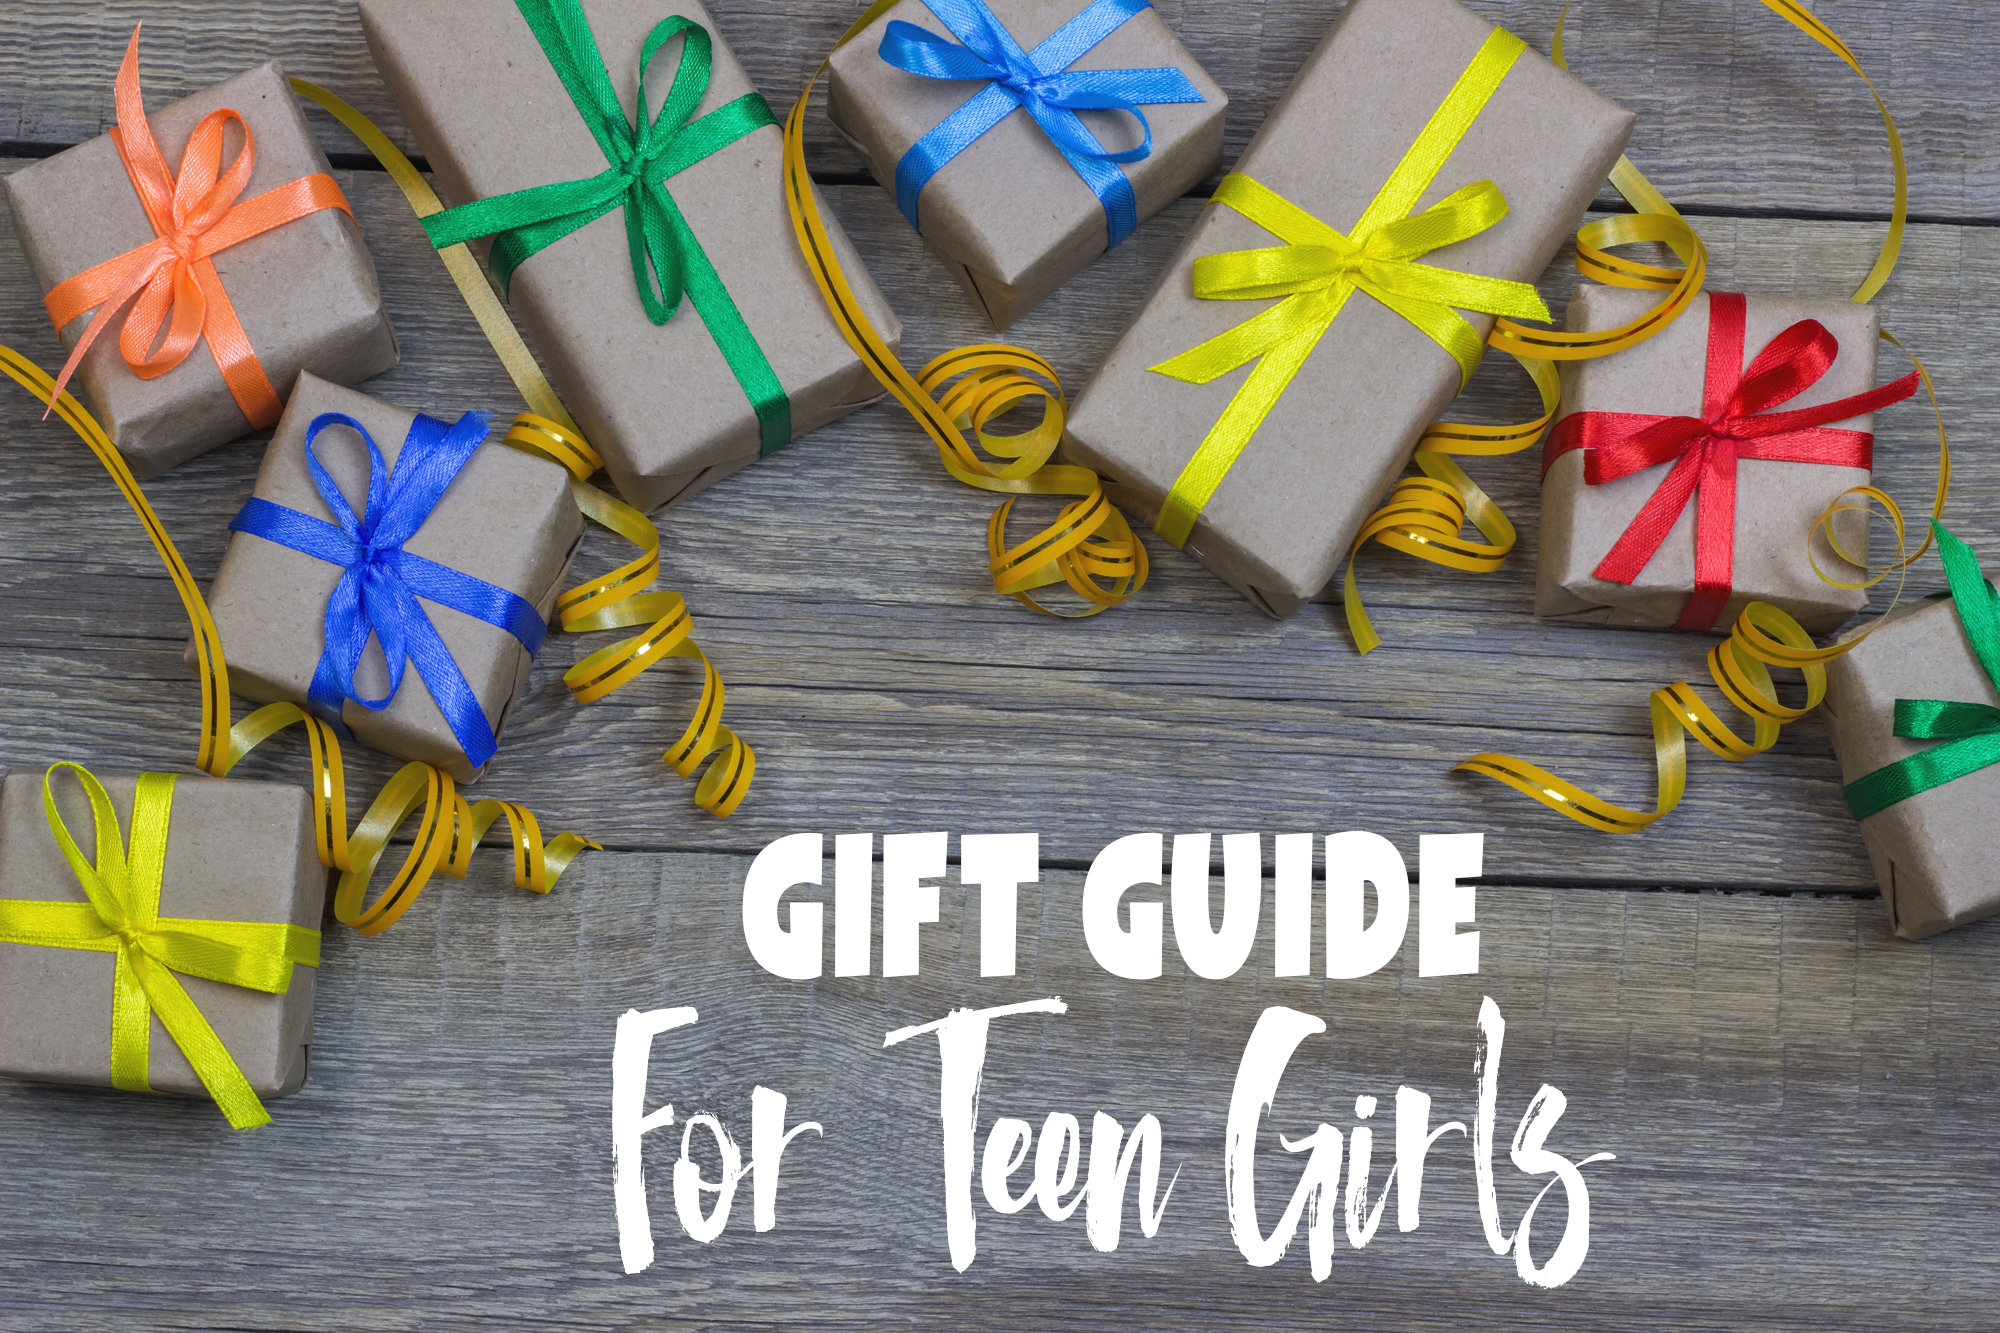 20 Cool Gift Ideas For Teen Girls 13 To 18 Years Old Raising Tween And Teen Girls